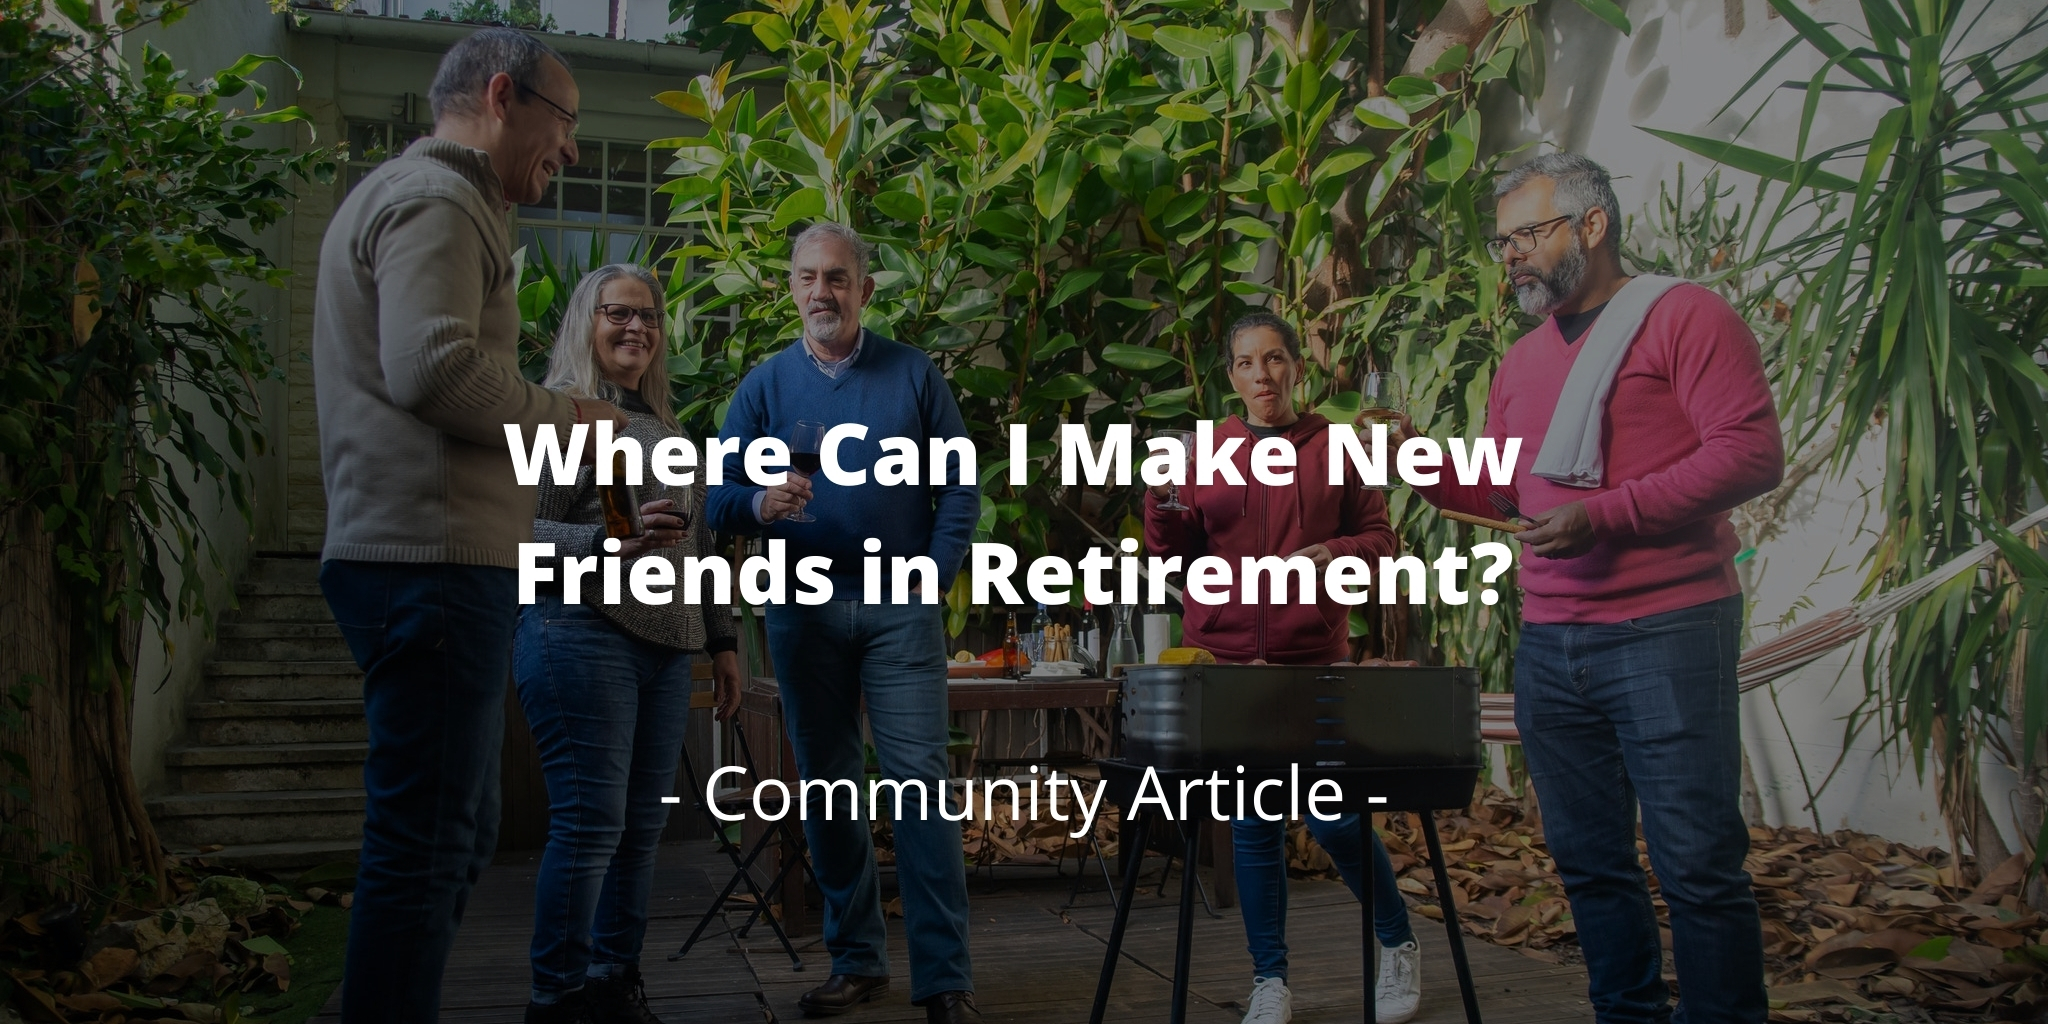 Where Can I Make New Friends in Retirement?